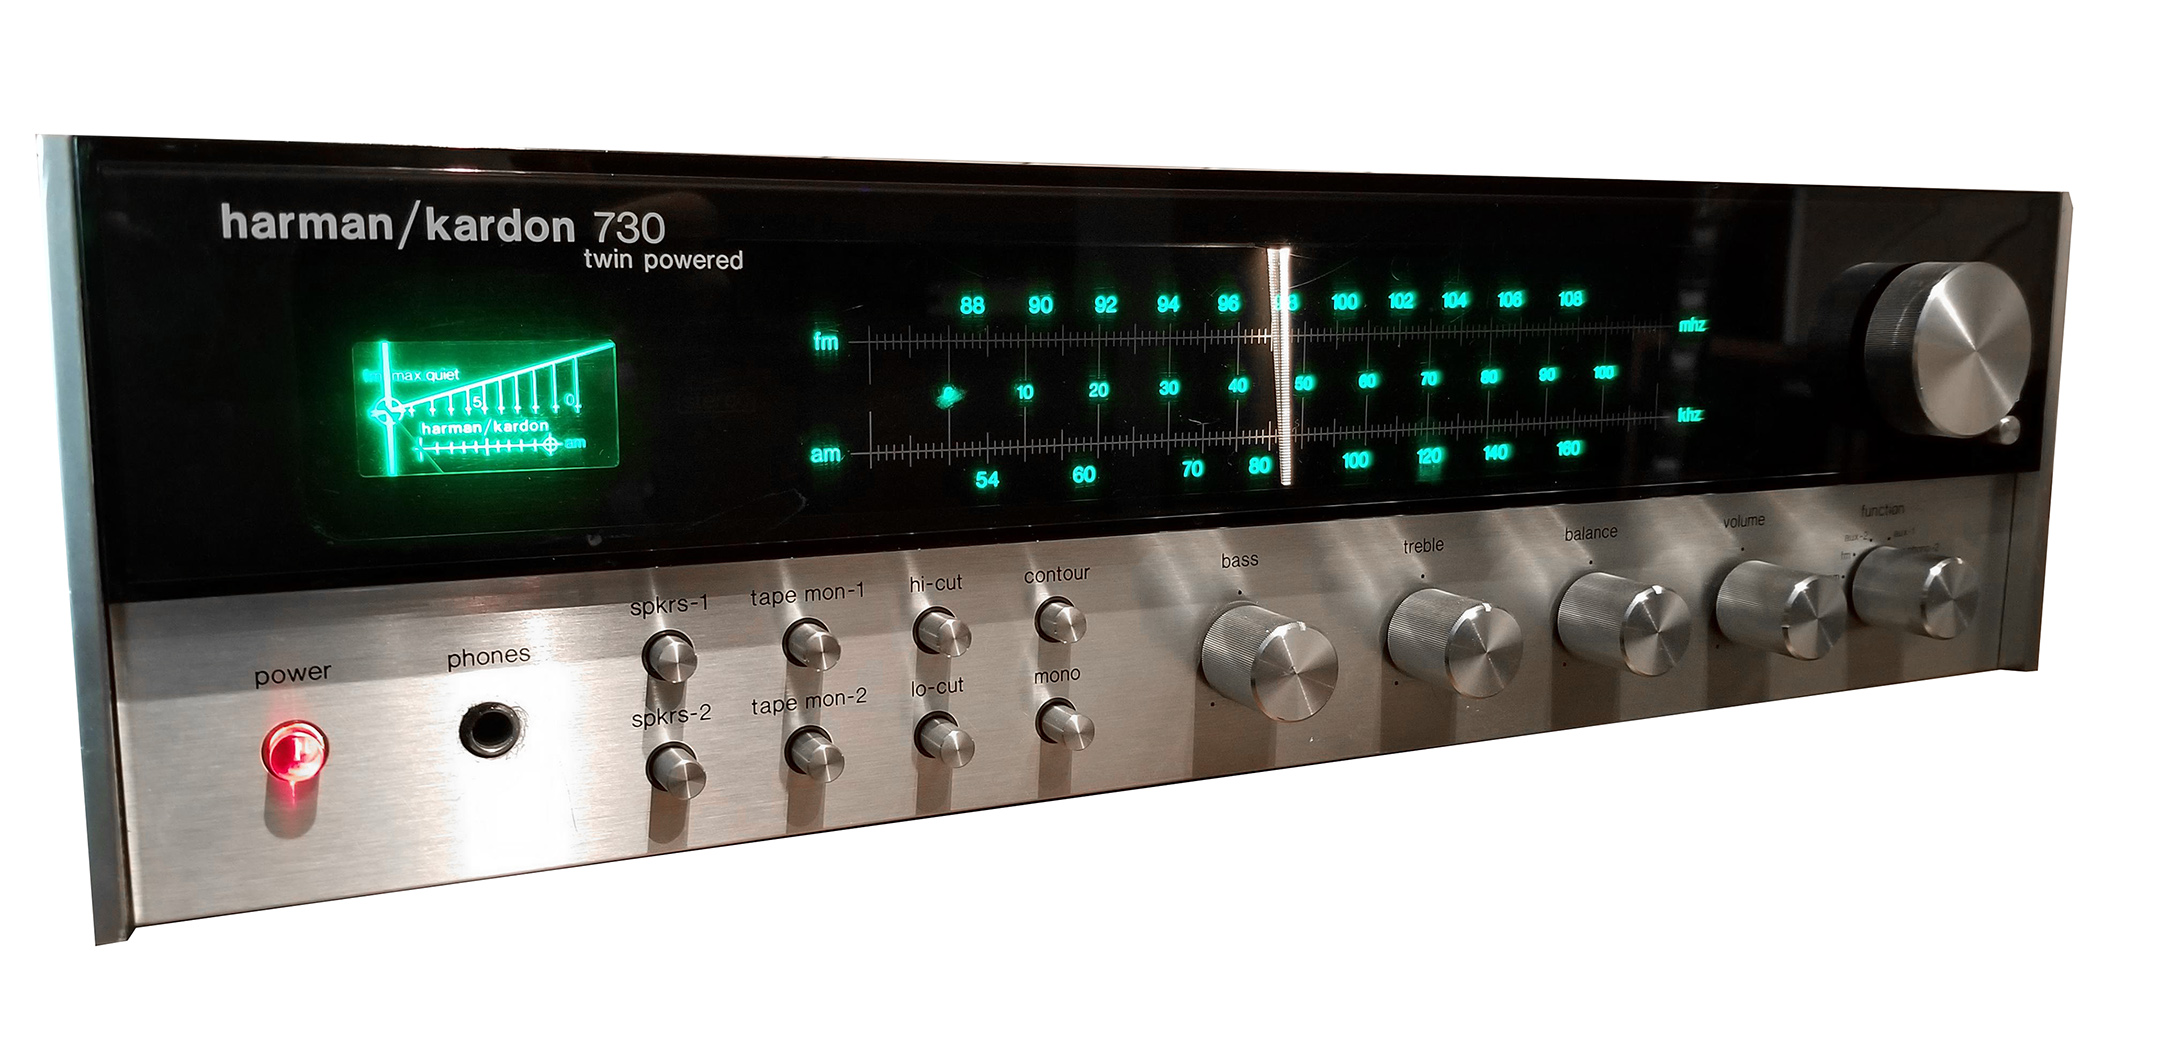 Harman Kardon 730 receiver